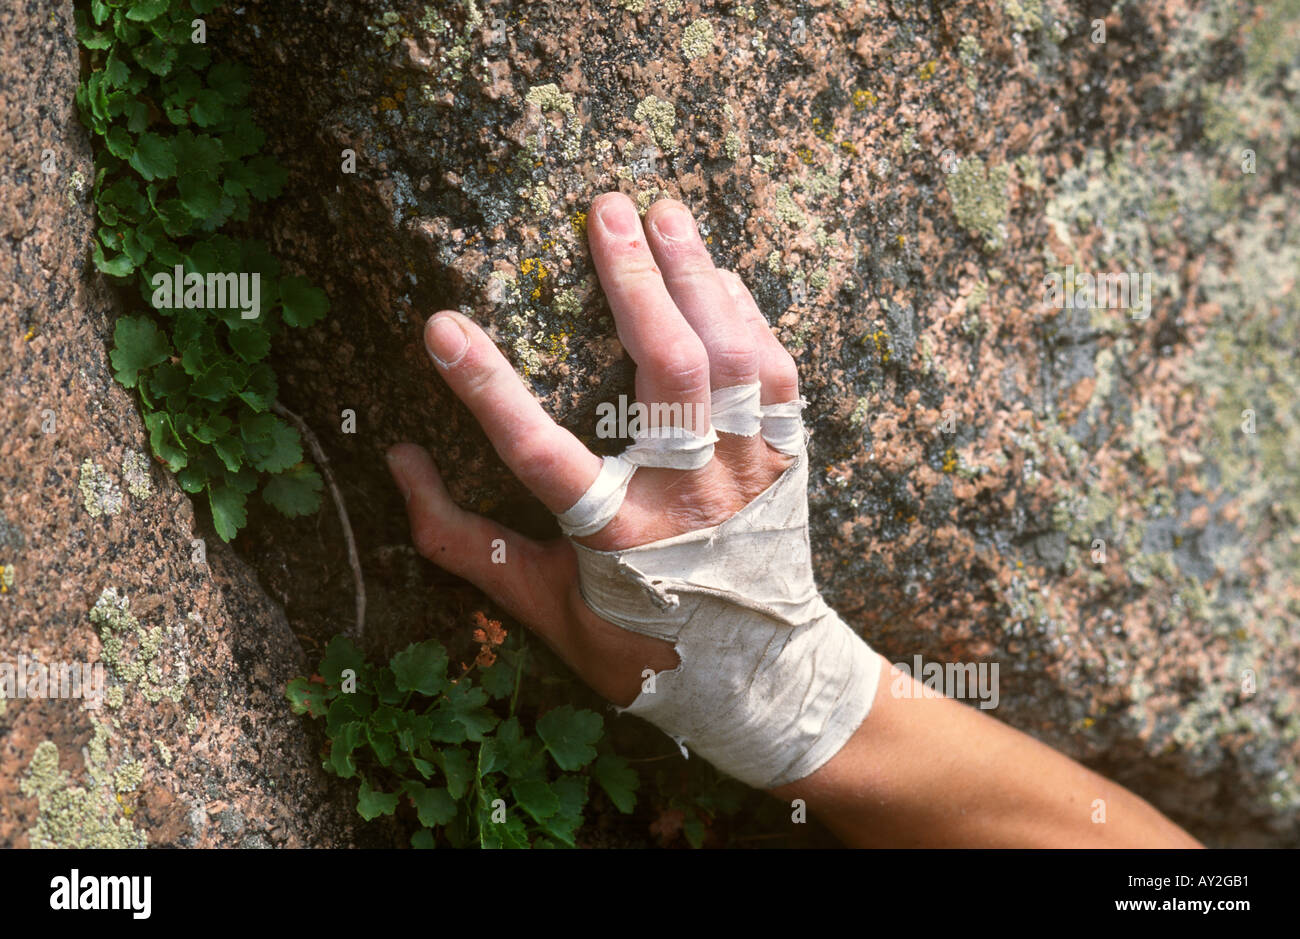 Detail of rock climbers hand - Stock Image